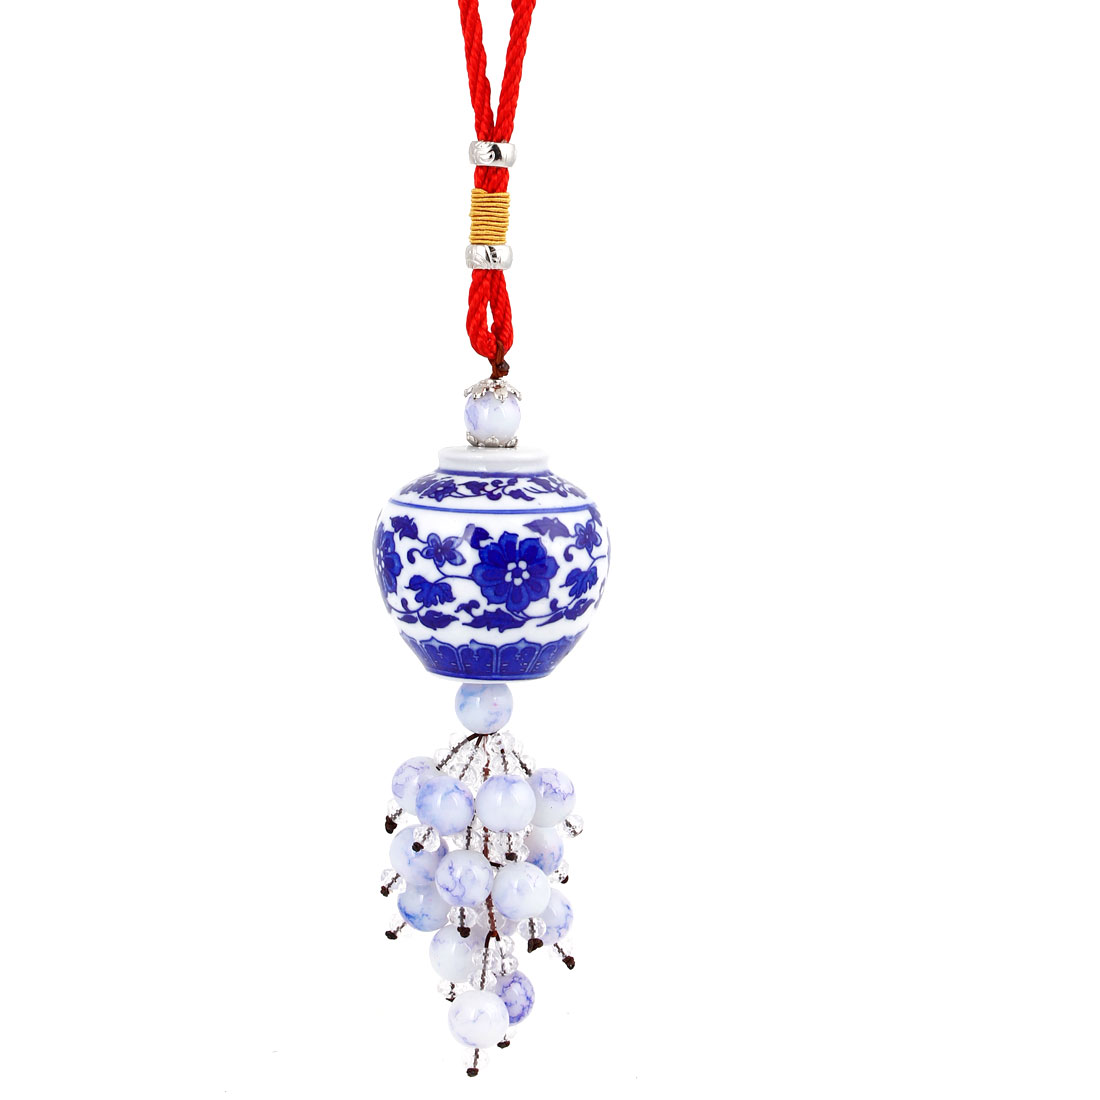 Beads Linked Blue White Ceramic Wine Jar Pendant Hanging Decoration for Auto Car